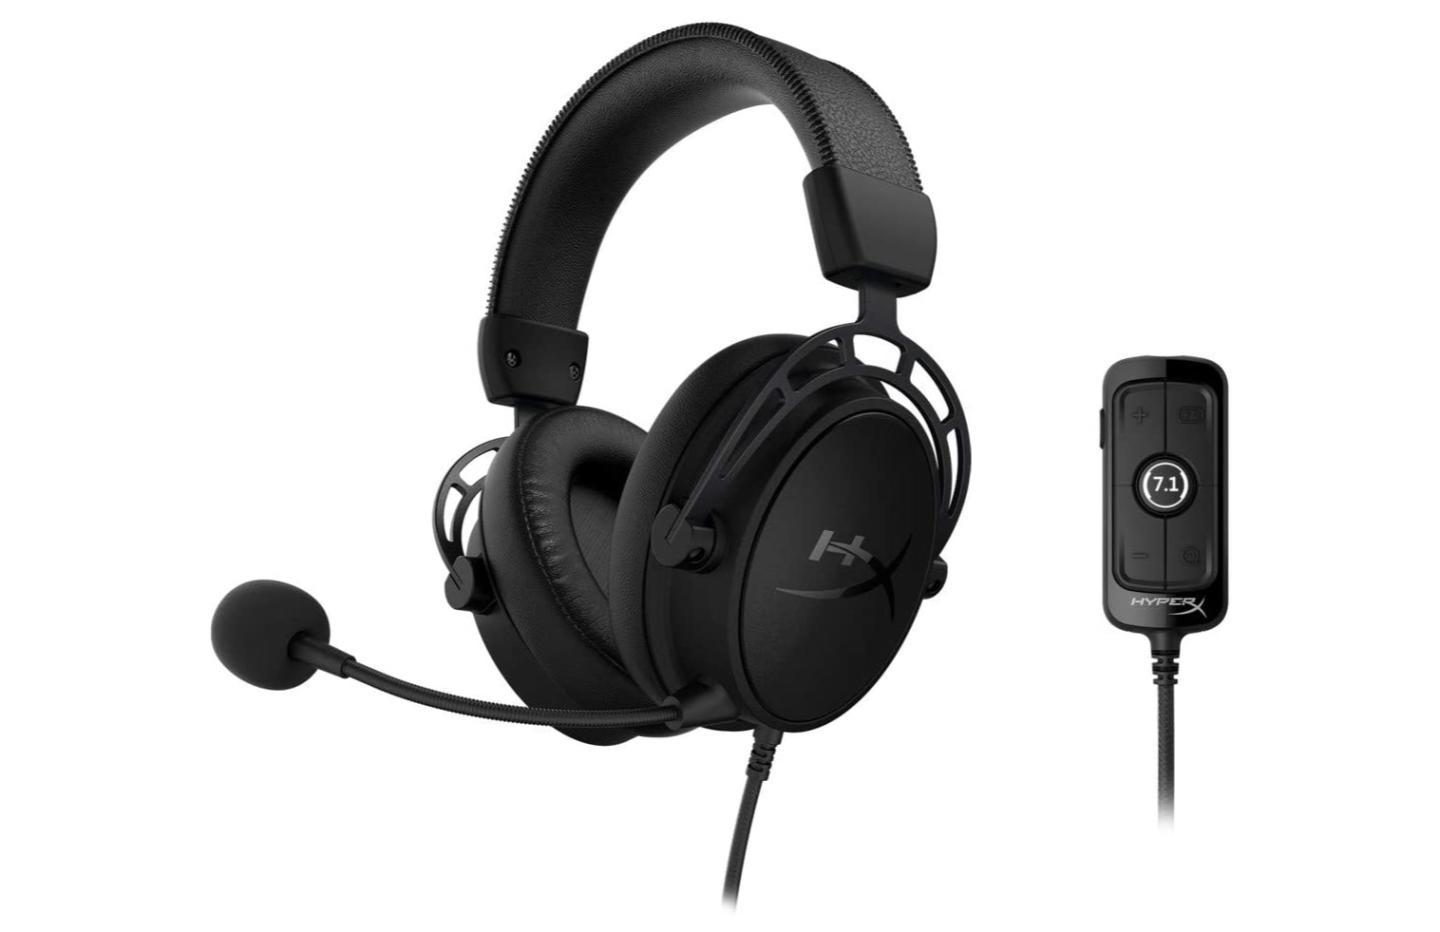 En promo, le casque gaming HyperX Cloud Alpha S passe sous les 100 €